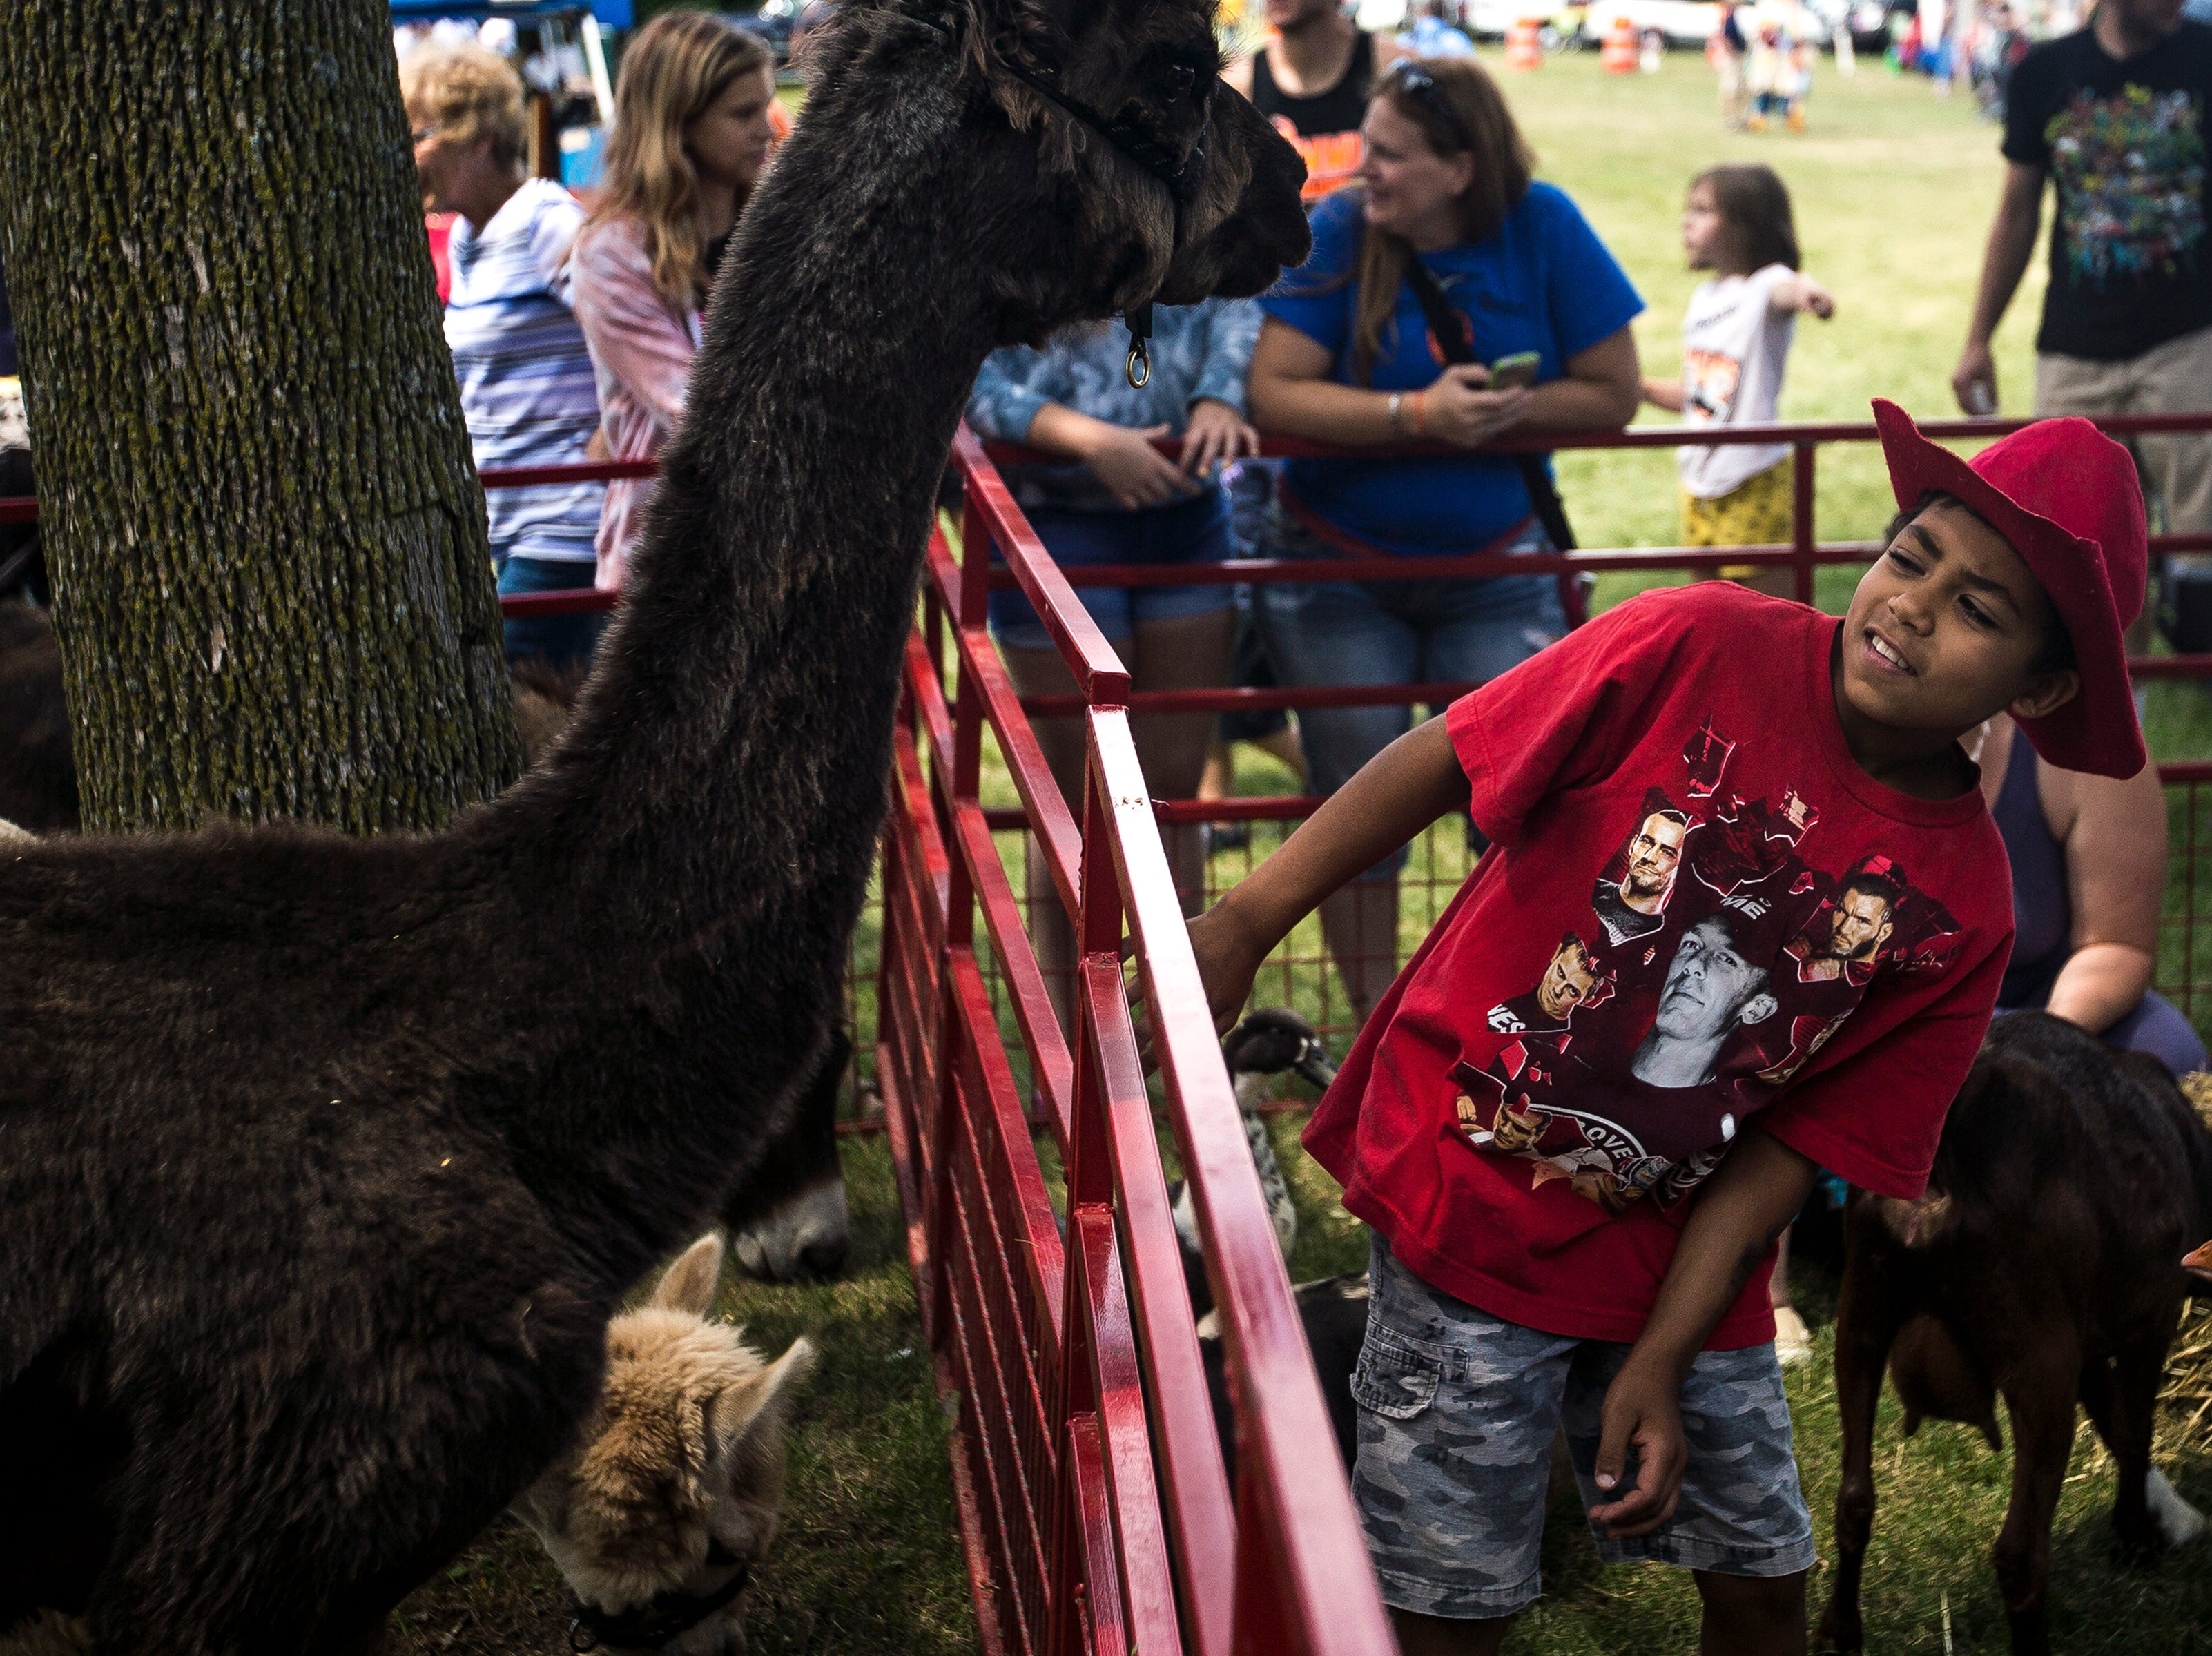 A boy eyes an alpaca in a petting zoo during Celebrate Plover at Lake Pacawa Park in Plover, Wis., July 28, 2018.